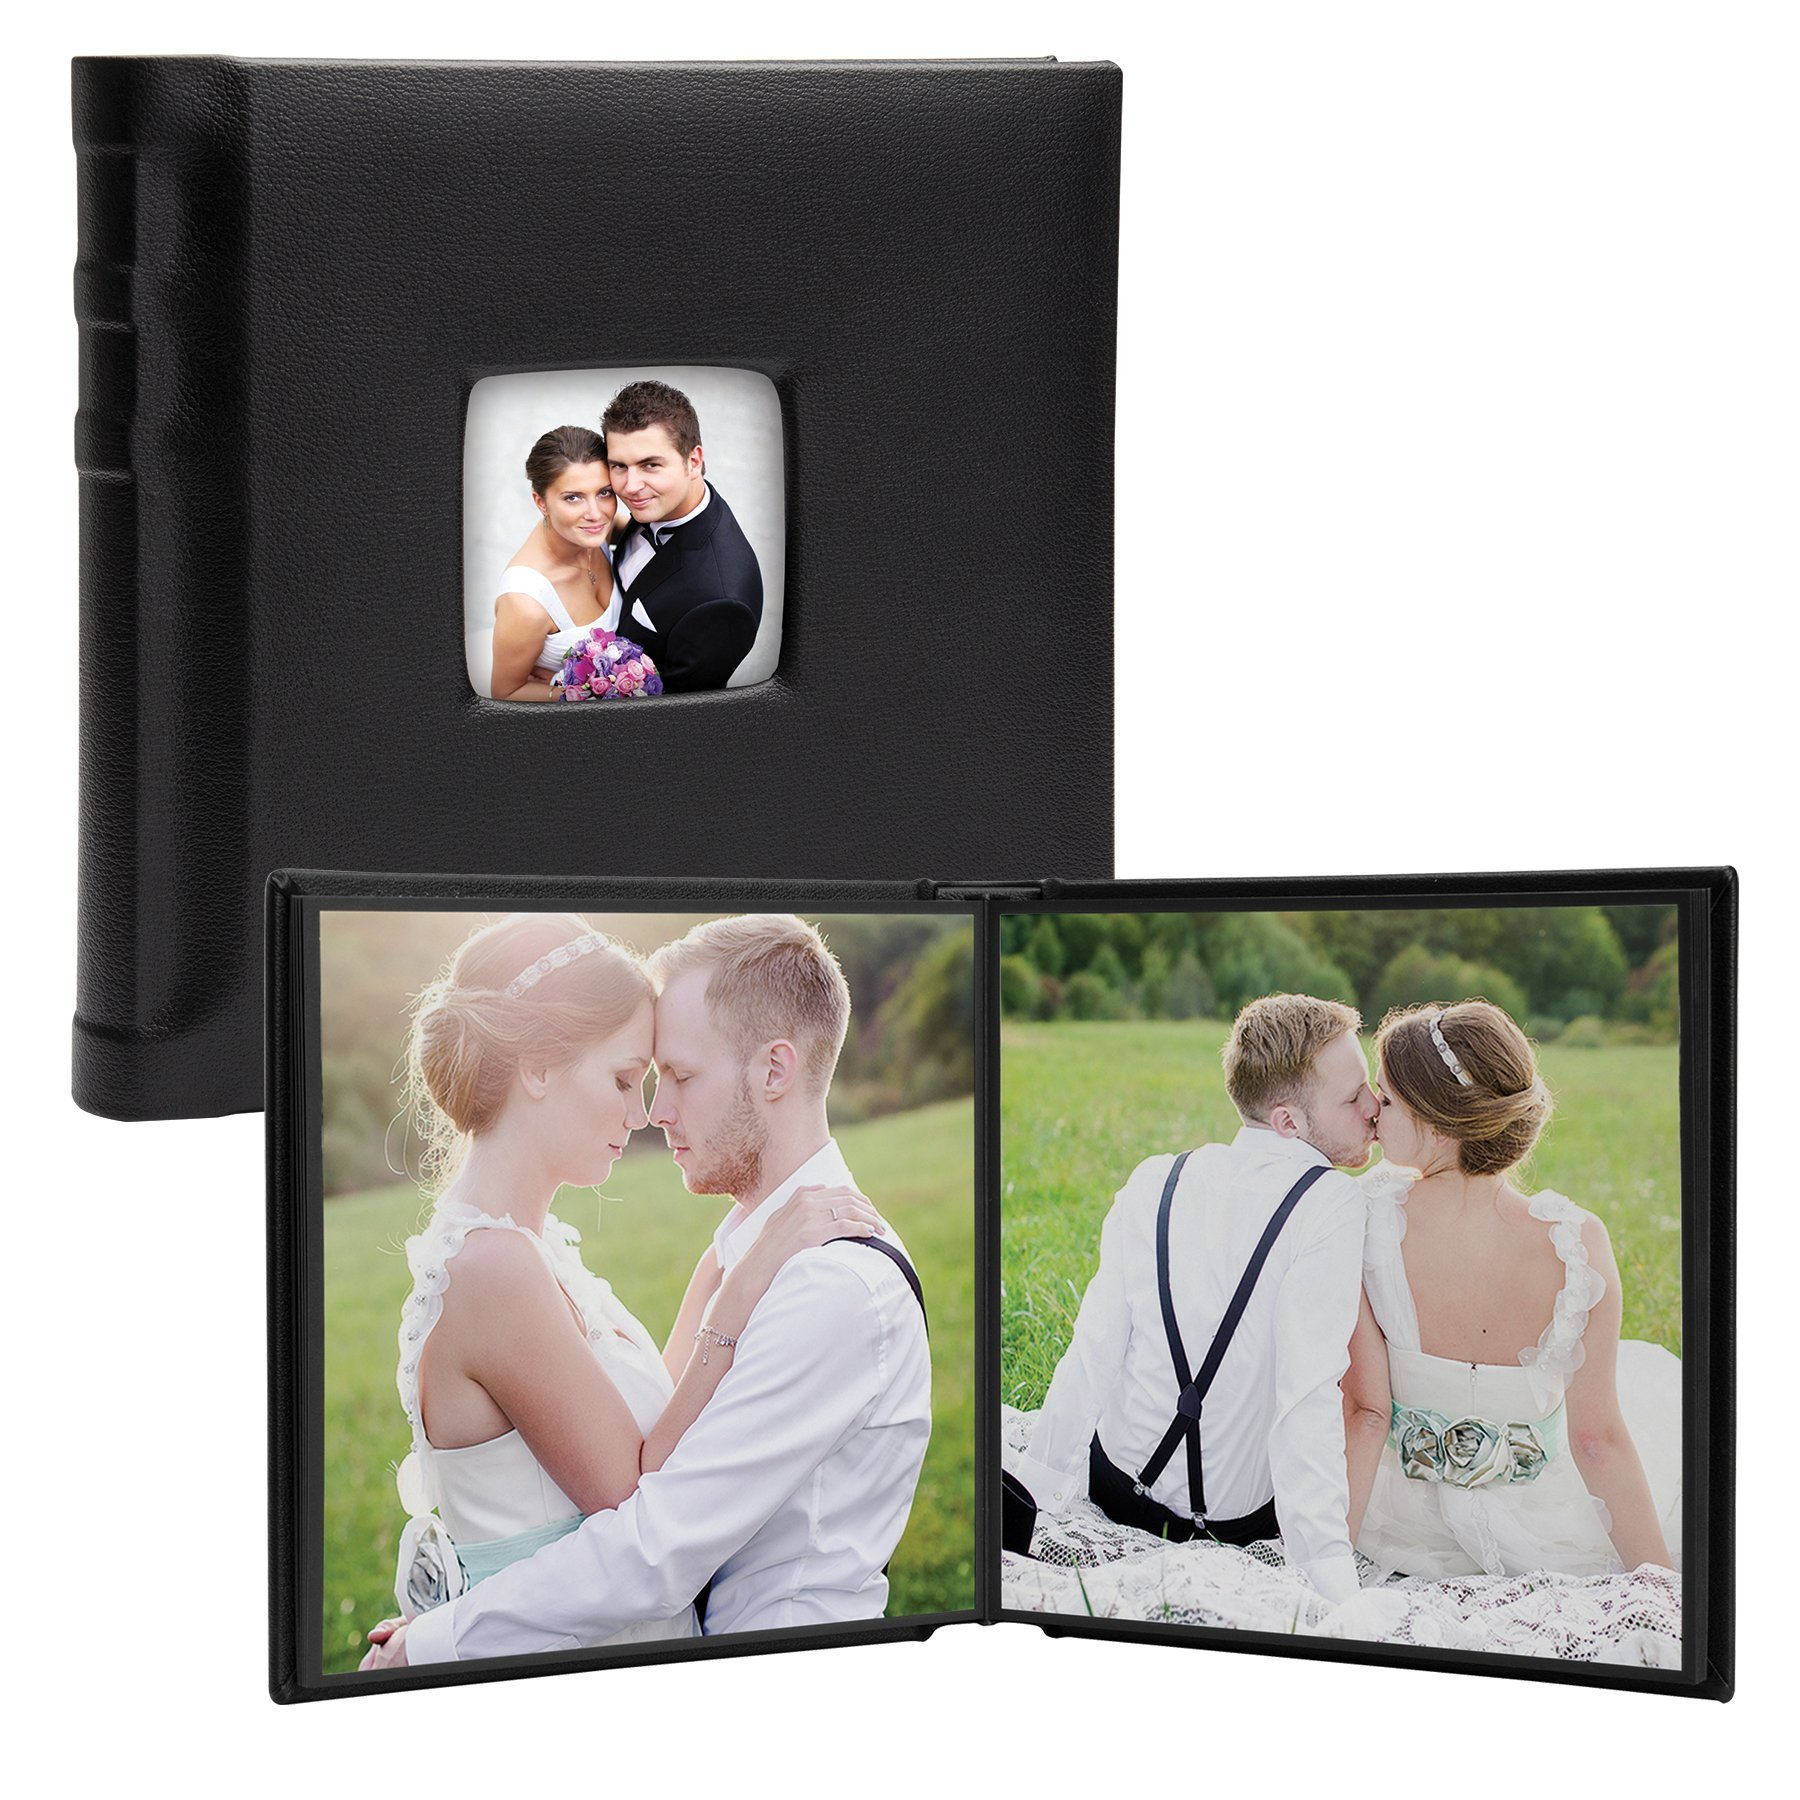 8'' x 8'' Square Self-Stick Albums with Cameo Cover (#6888) - Case of 12 by Neil Enterprises, Inc